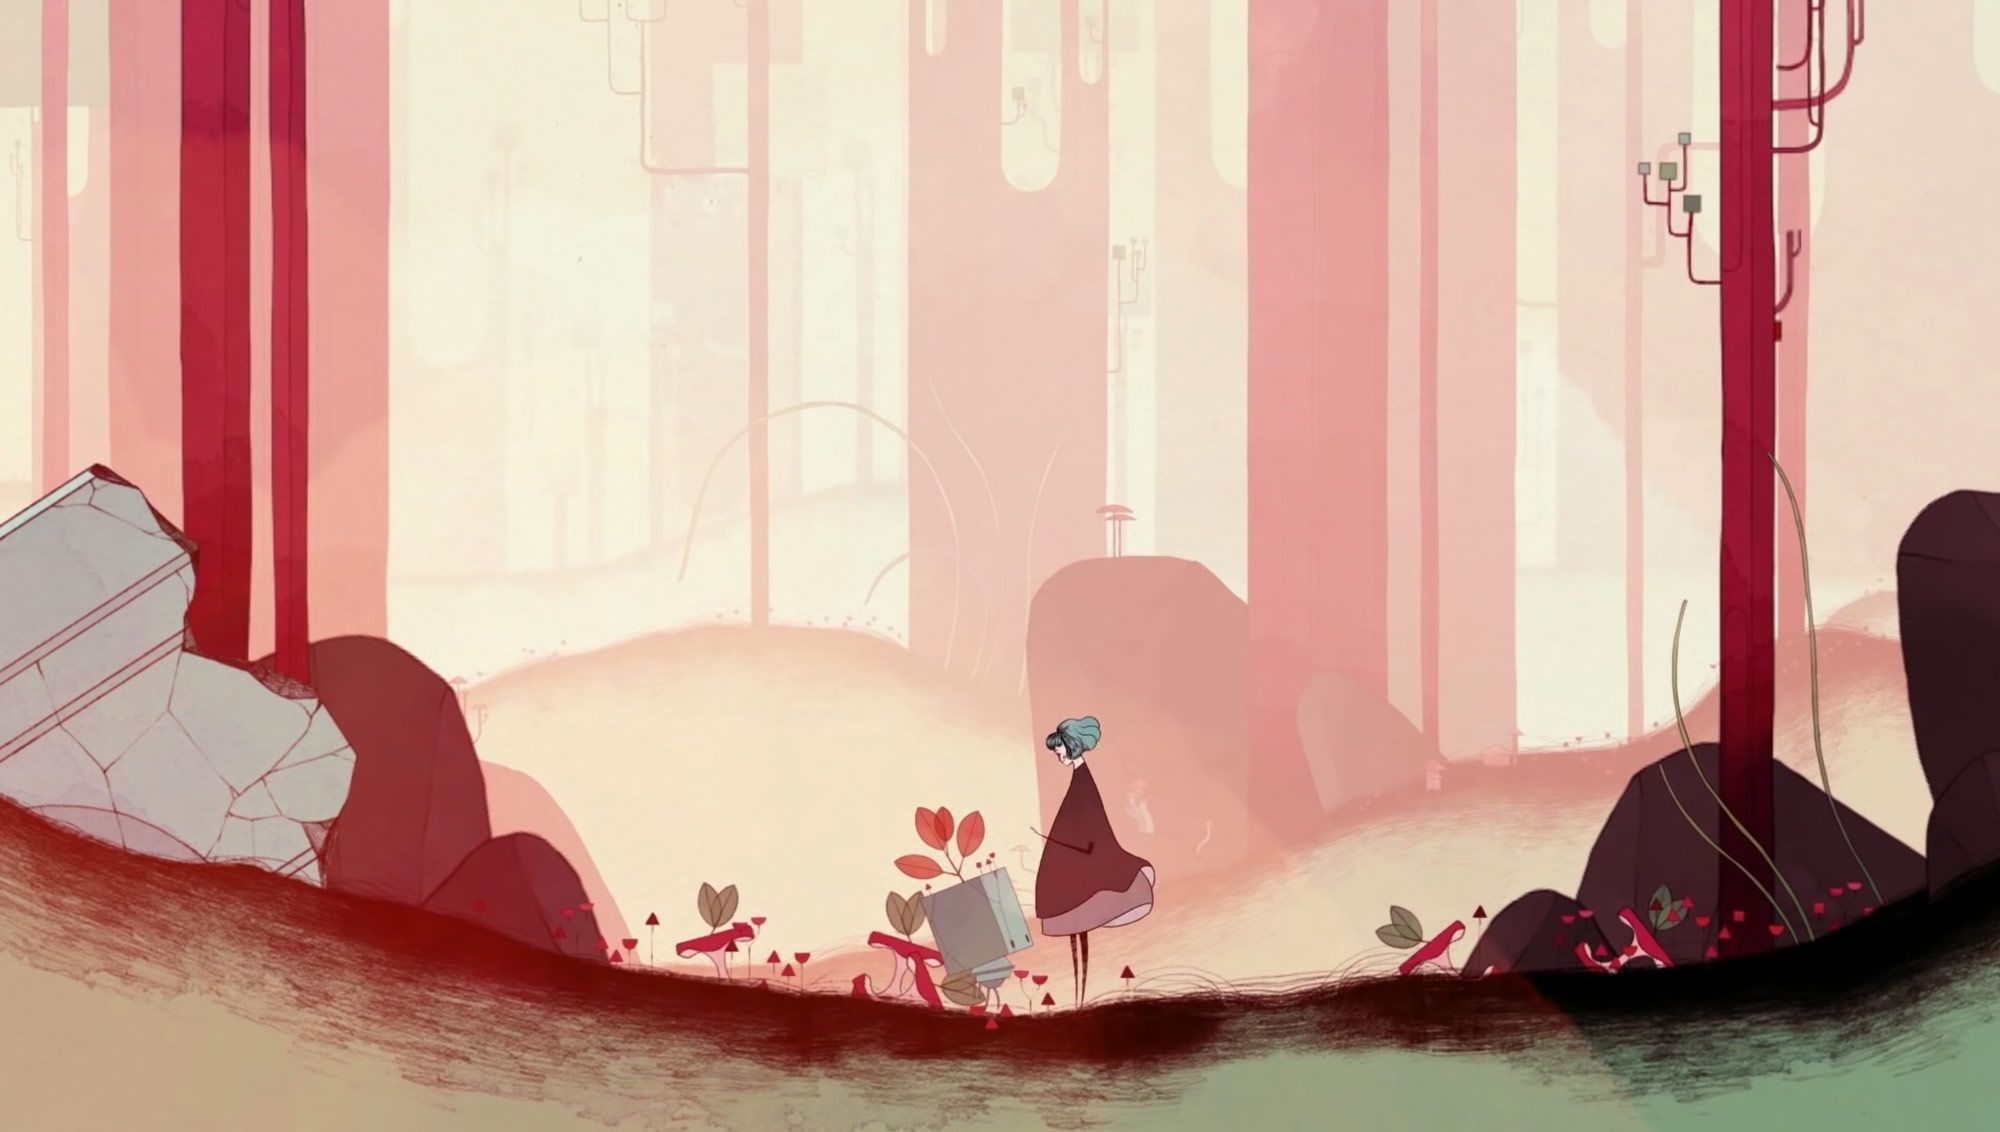 Gris Explore A Surreal Watercolor Landscape In A New Video Game